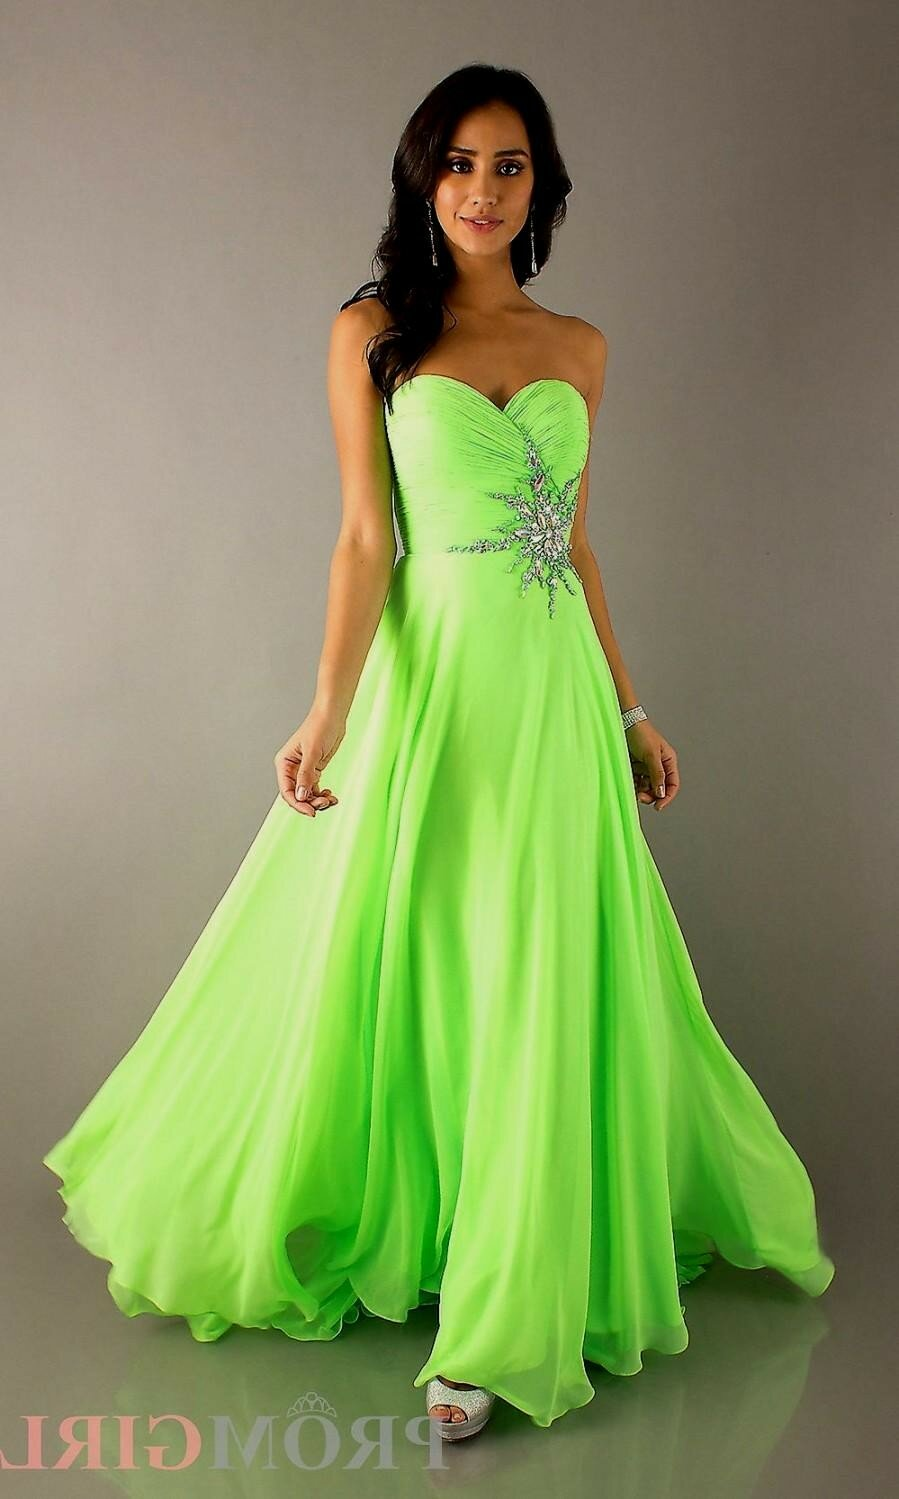 White And Lime Green Wedding Dresses Pictures Ideas Guide To